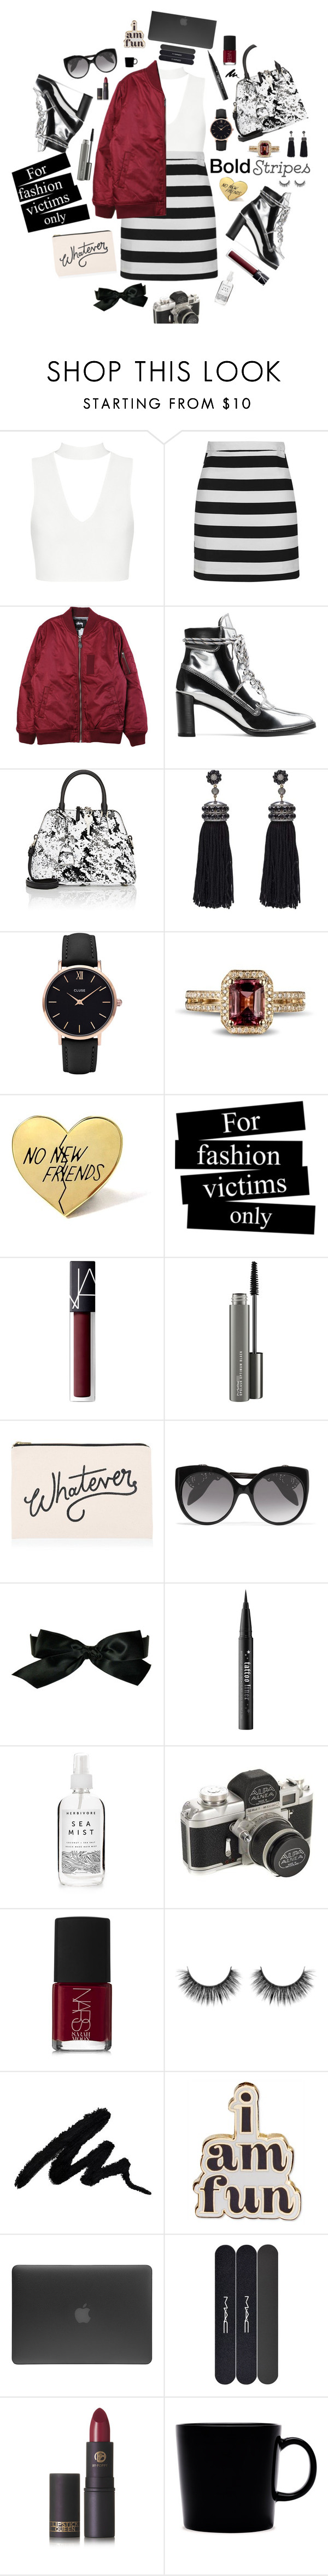 """""""Bold Stripes (Contest)"""" by jafashions ❤ liked on Polyvore featuring Topshop, Stussy, Stuart Weitzman, Maison Margiela, Nush, CLUSE, PINTRILL, NARS Cosmetics, MAC Cosmetics and ALPHABET BAGS"""